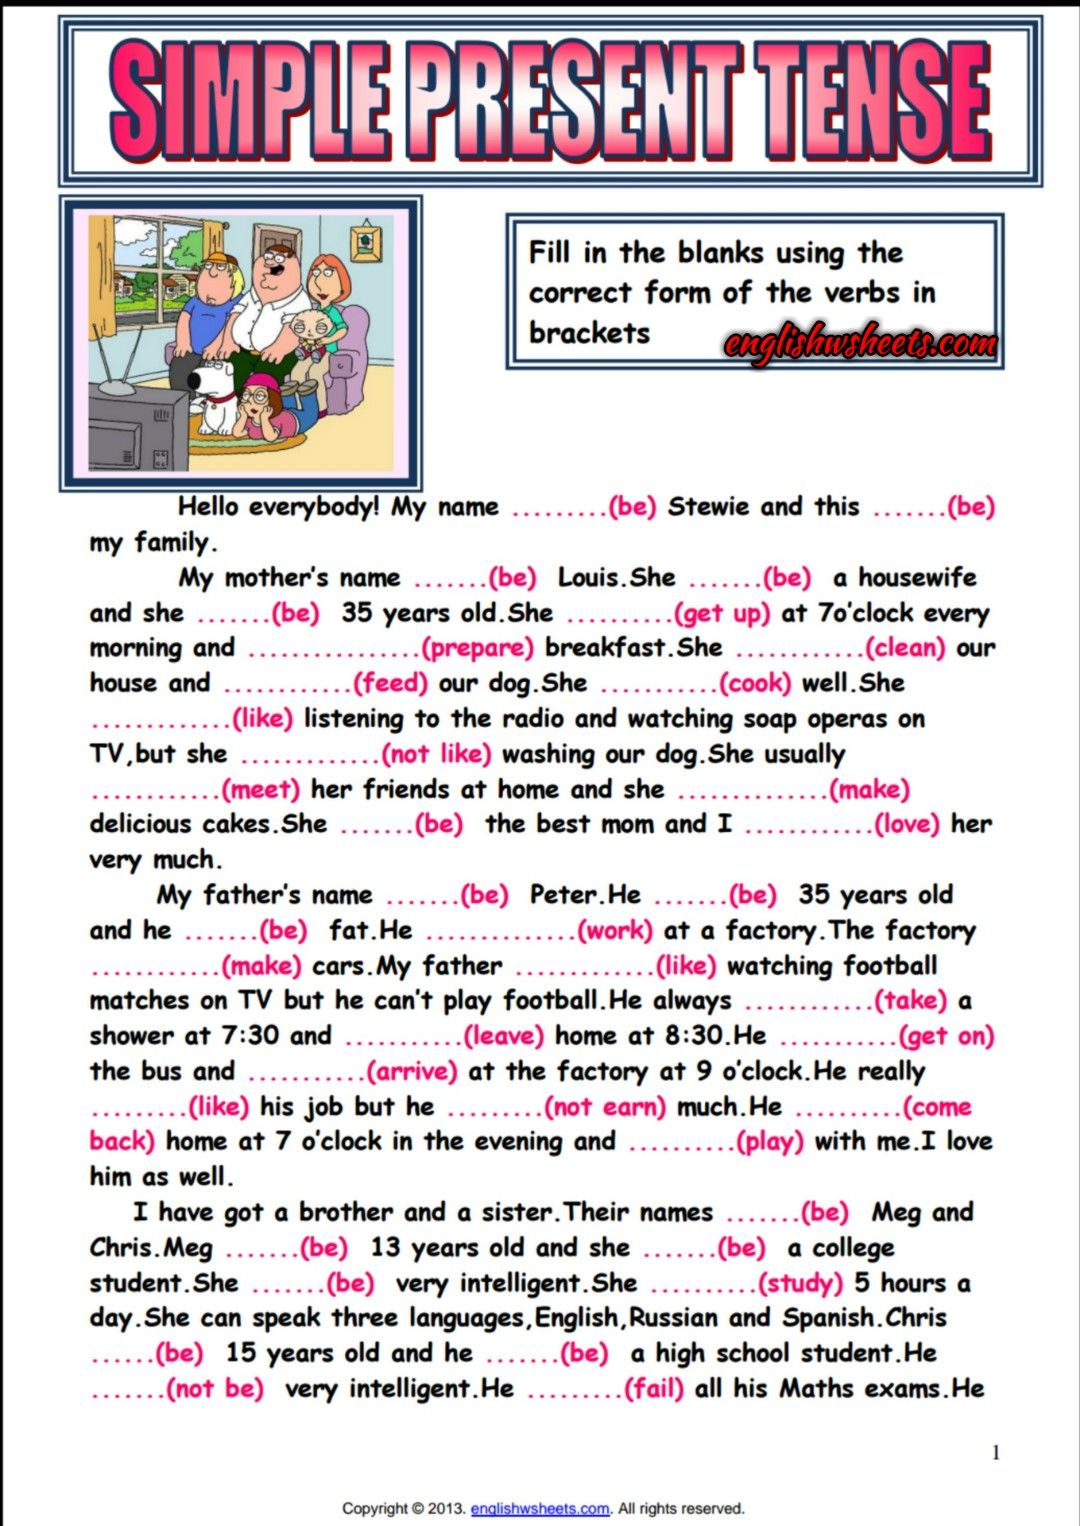 2nd Grade Reading Printable Worksheets Word Simple Present Tense Reading Text Gap Filling Exercise  Esl  Pattern Block Fractions Worksheet with Singular And Plural Worksheets For Grade 3 Simple Present Tense Reading Text Gap Filling Exercise Rounding Place Value Worksheets